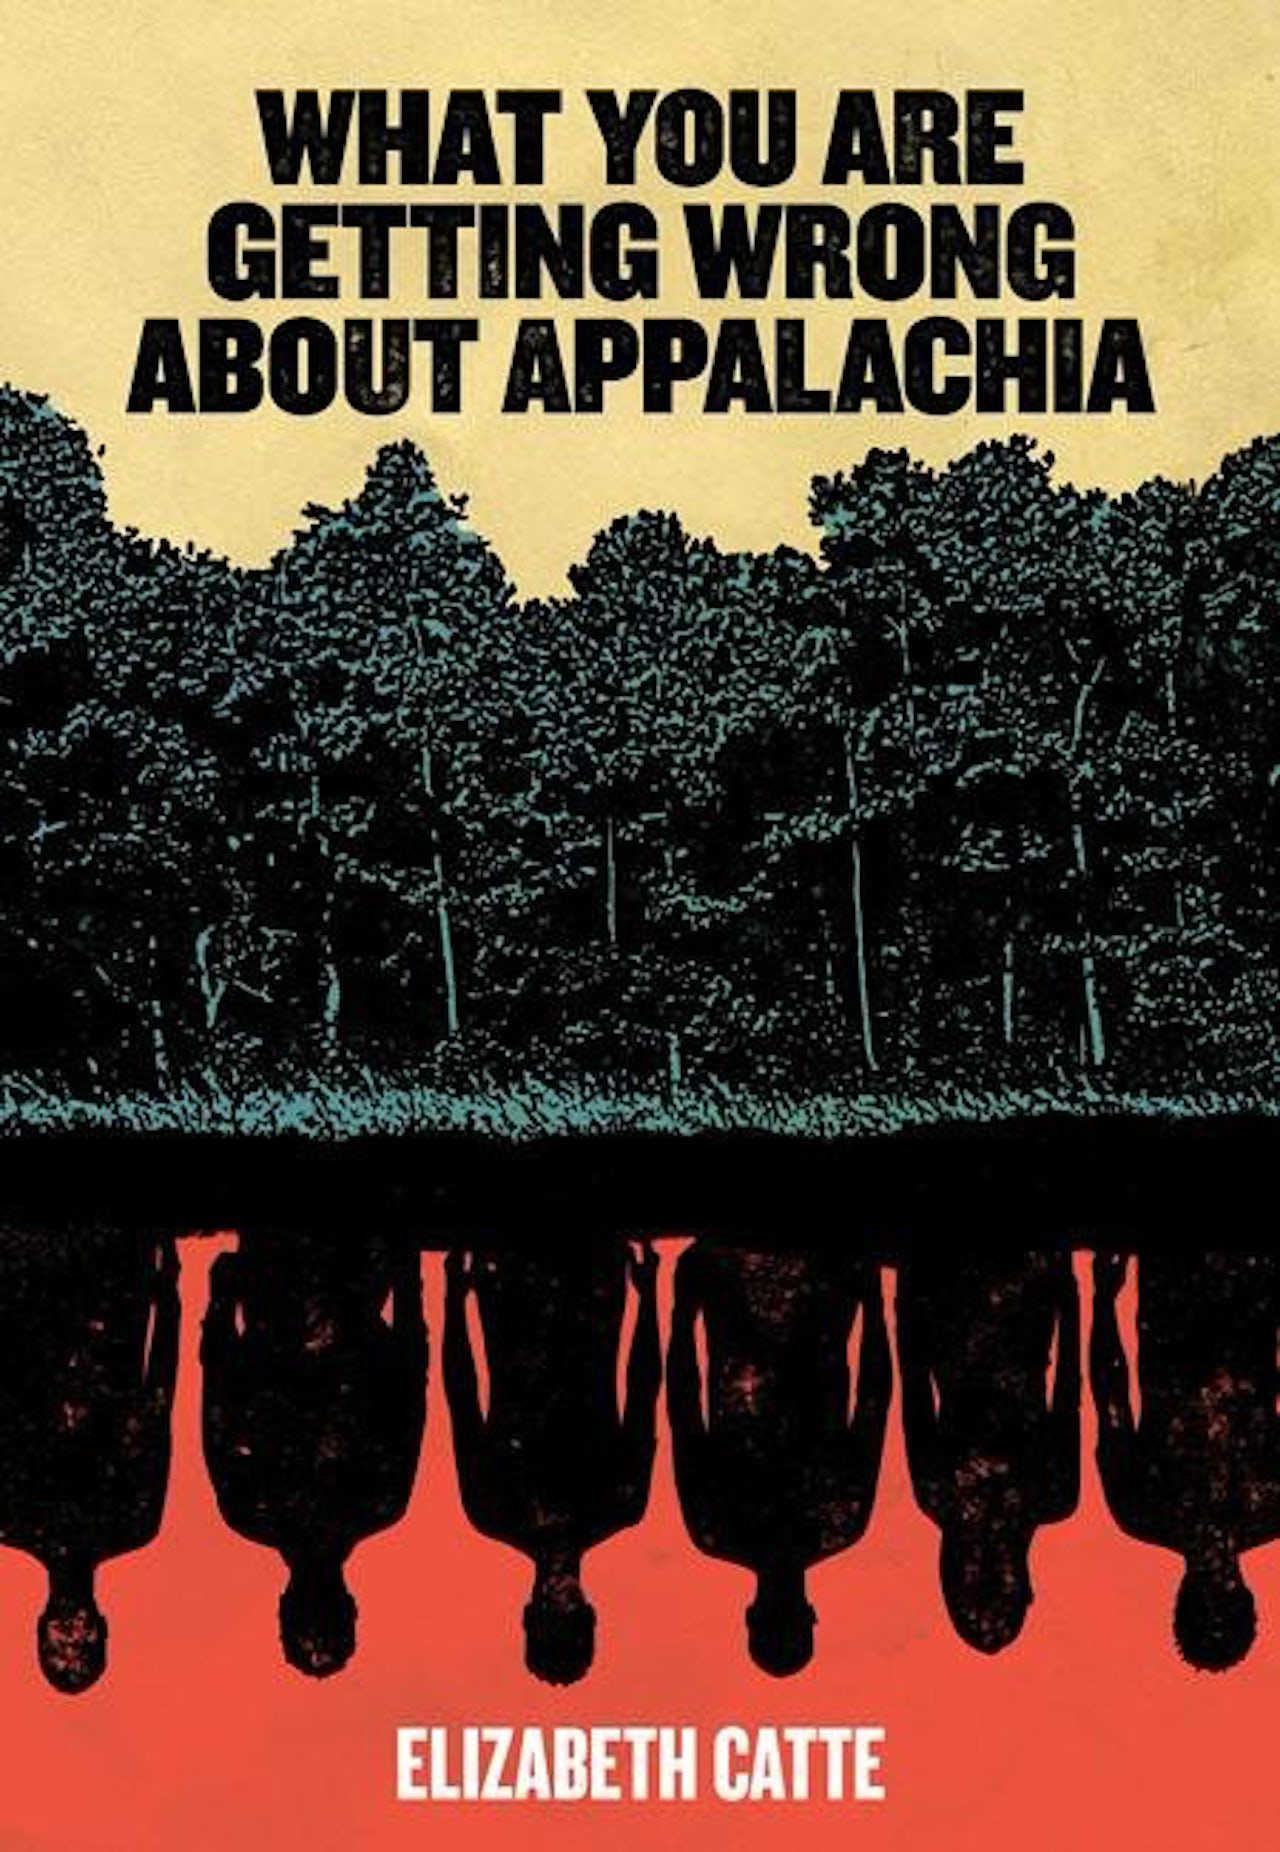 'What You Are Getting Wrong About Appalachia' by Elizabeth Catte